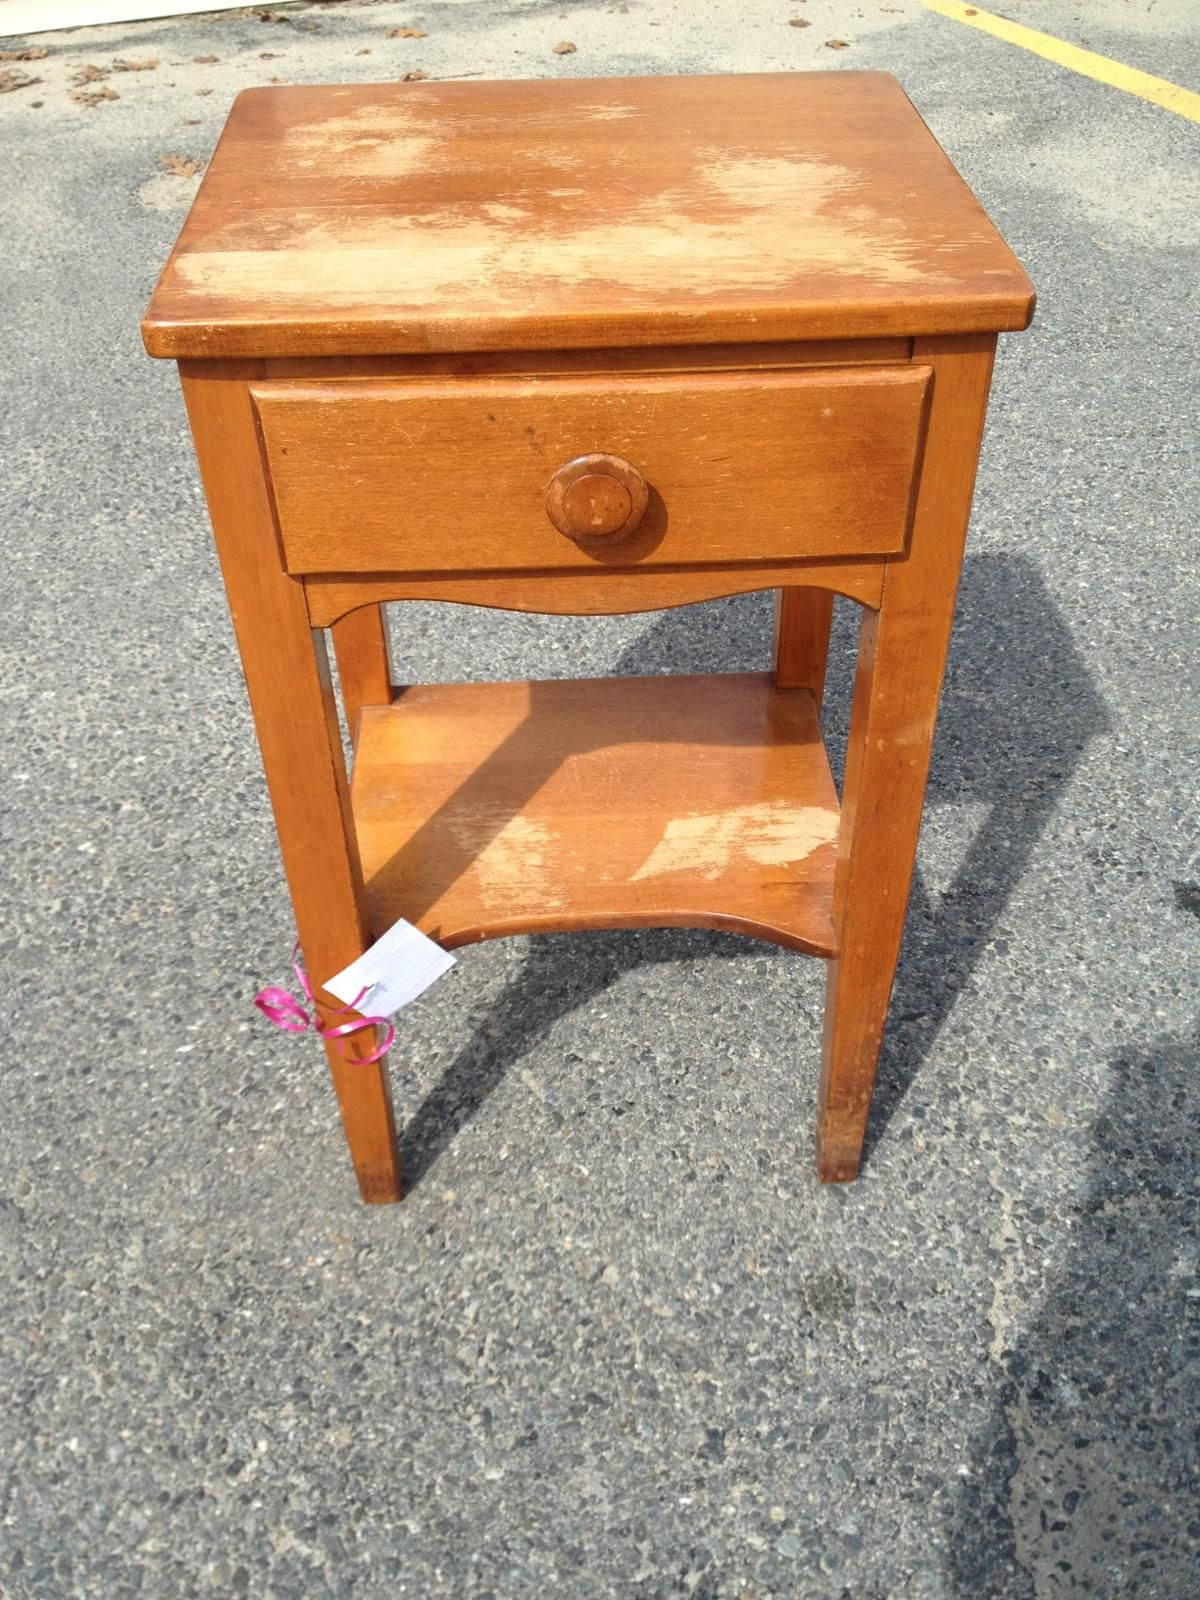 Needs a little TLC but new nightstand! Maybe some high gloss white paint.